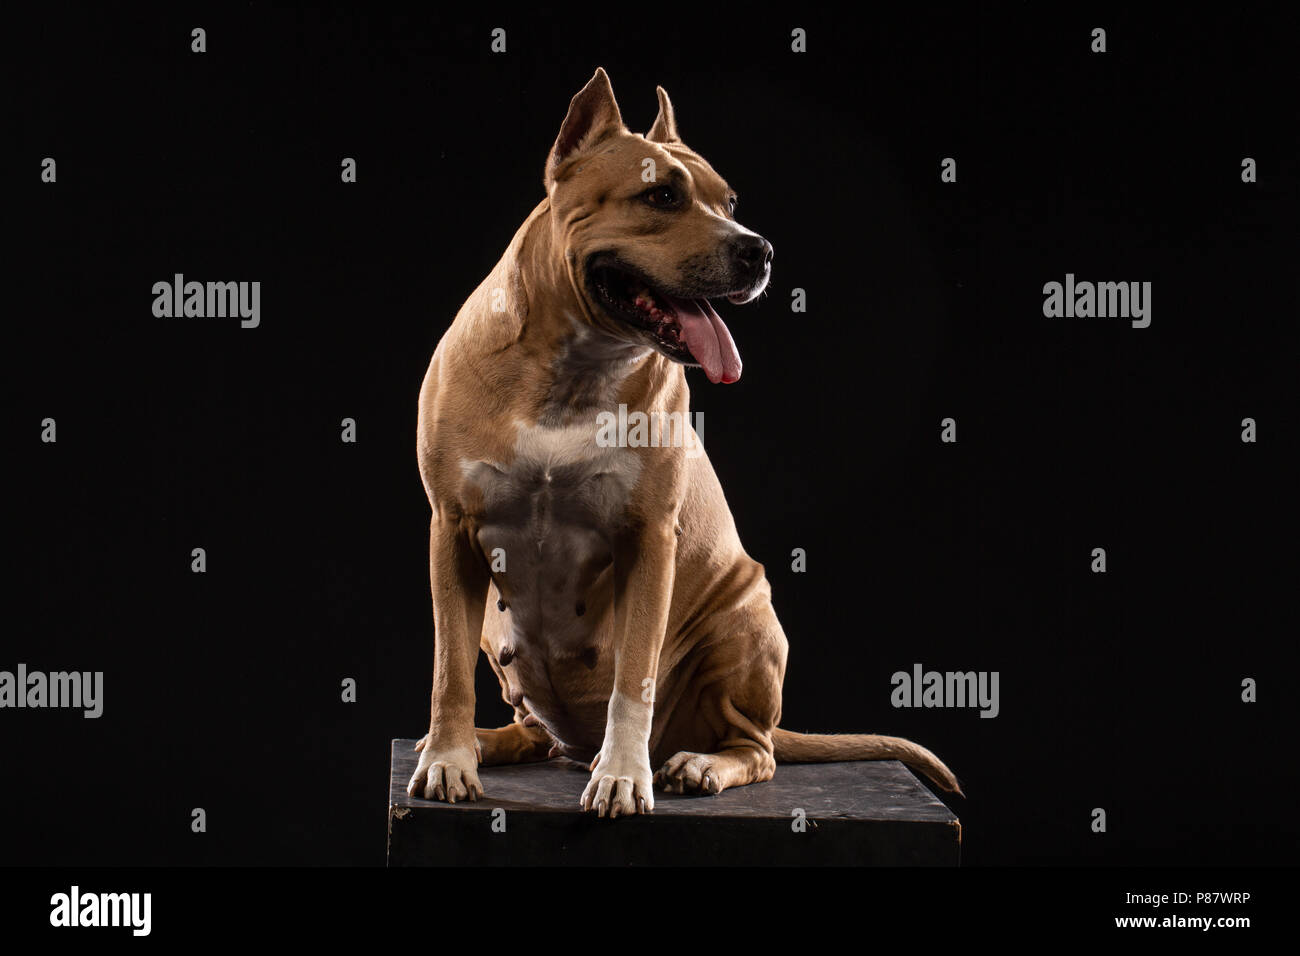 Red American pit bull terrier on black background - Stock Image